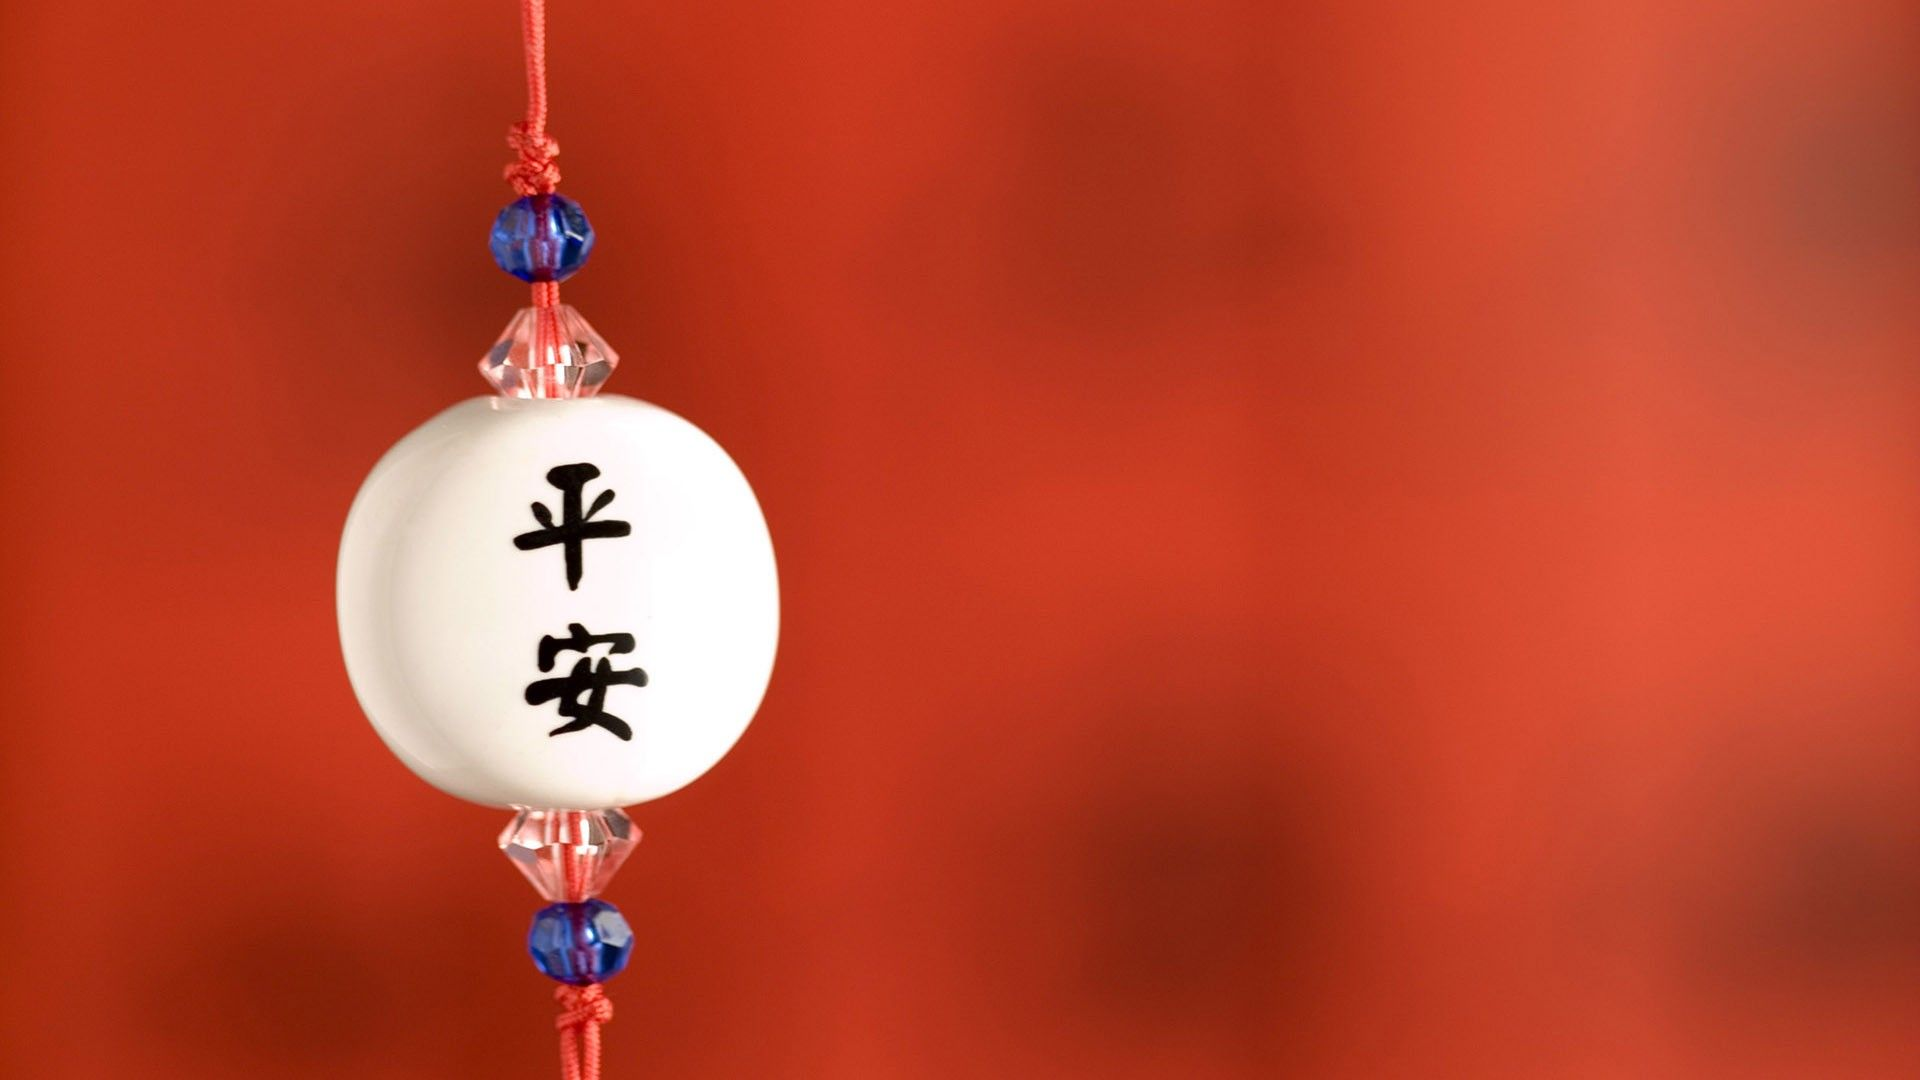 Chinese New Year full screen hd wallpaper